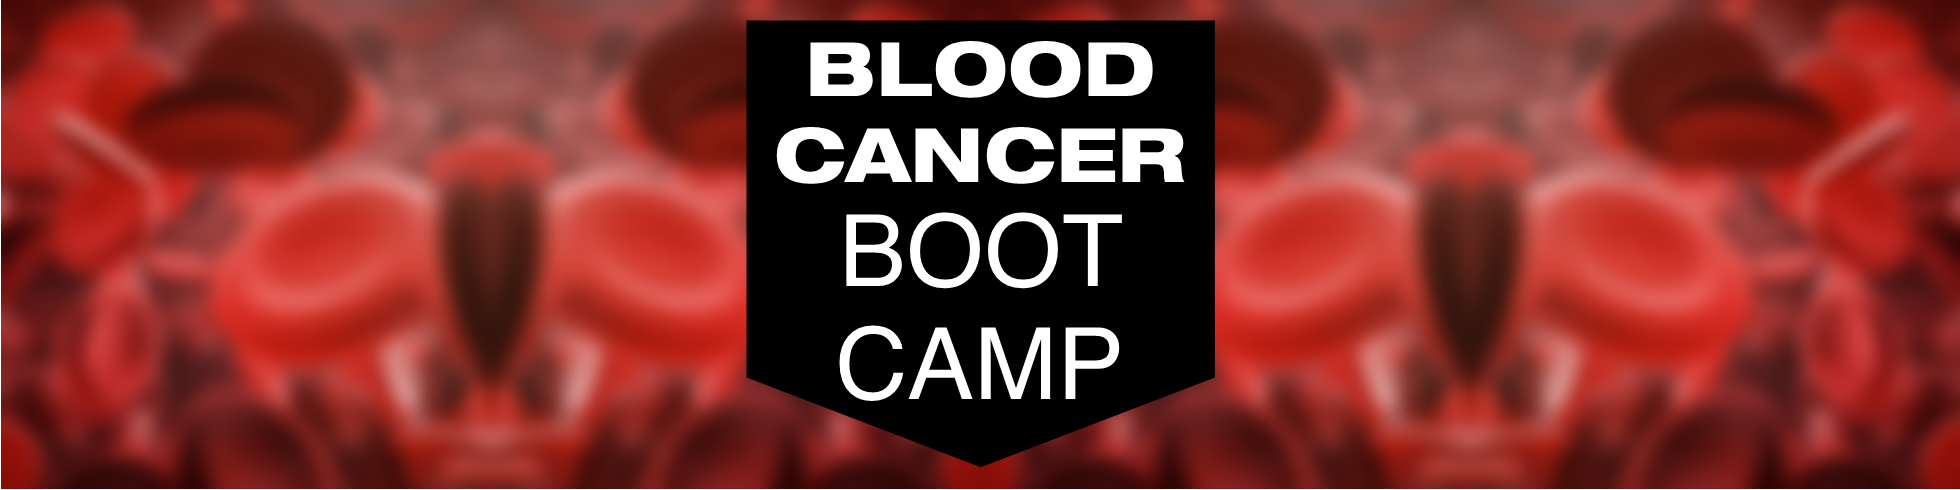 Blood Cancer Boot Camp text over blood cells